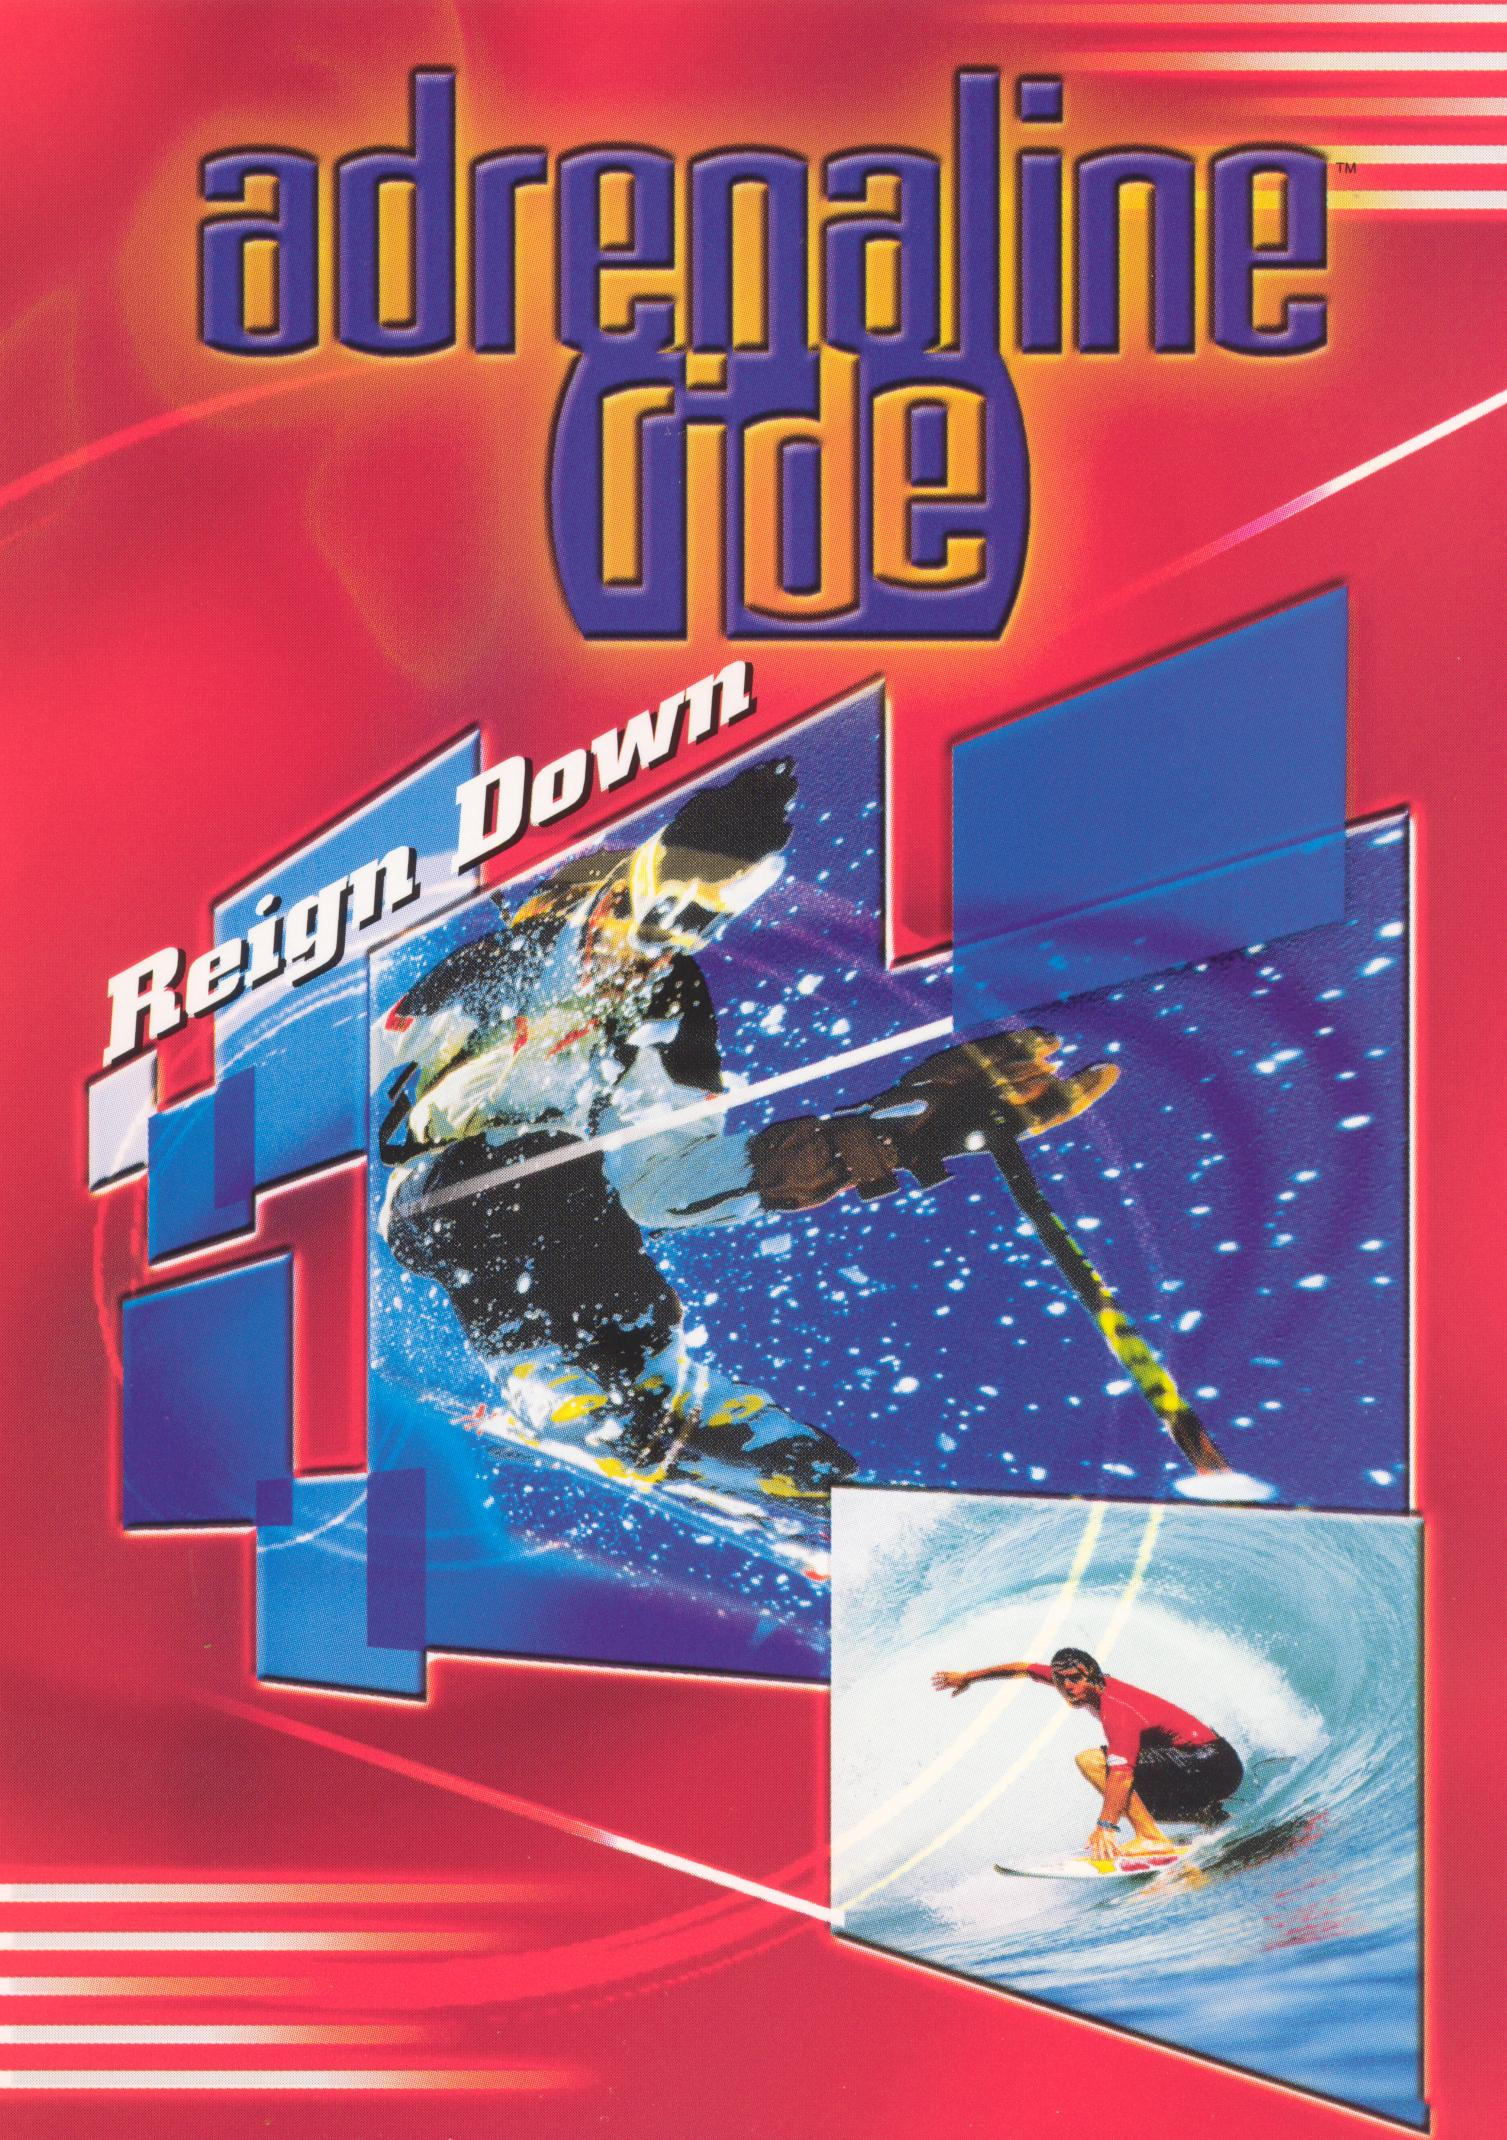 Adrenaline Ride: Reign Down